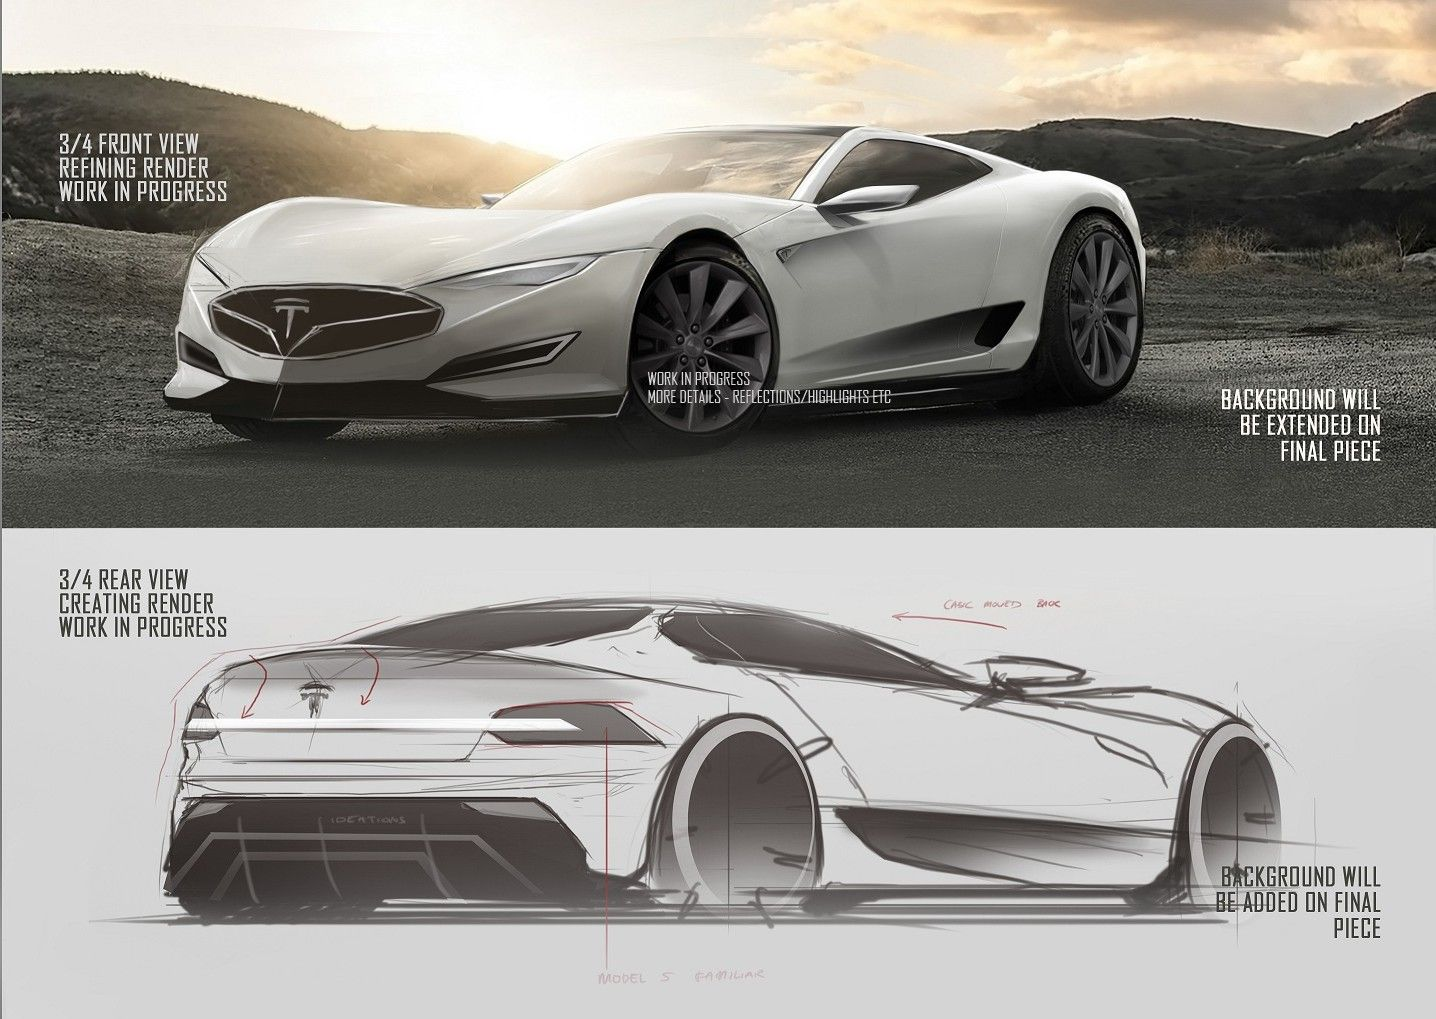 2016 Tesla Model R Hypercar Concept Design Sketches Carwow